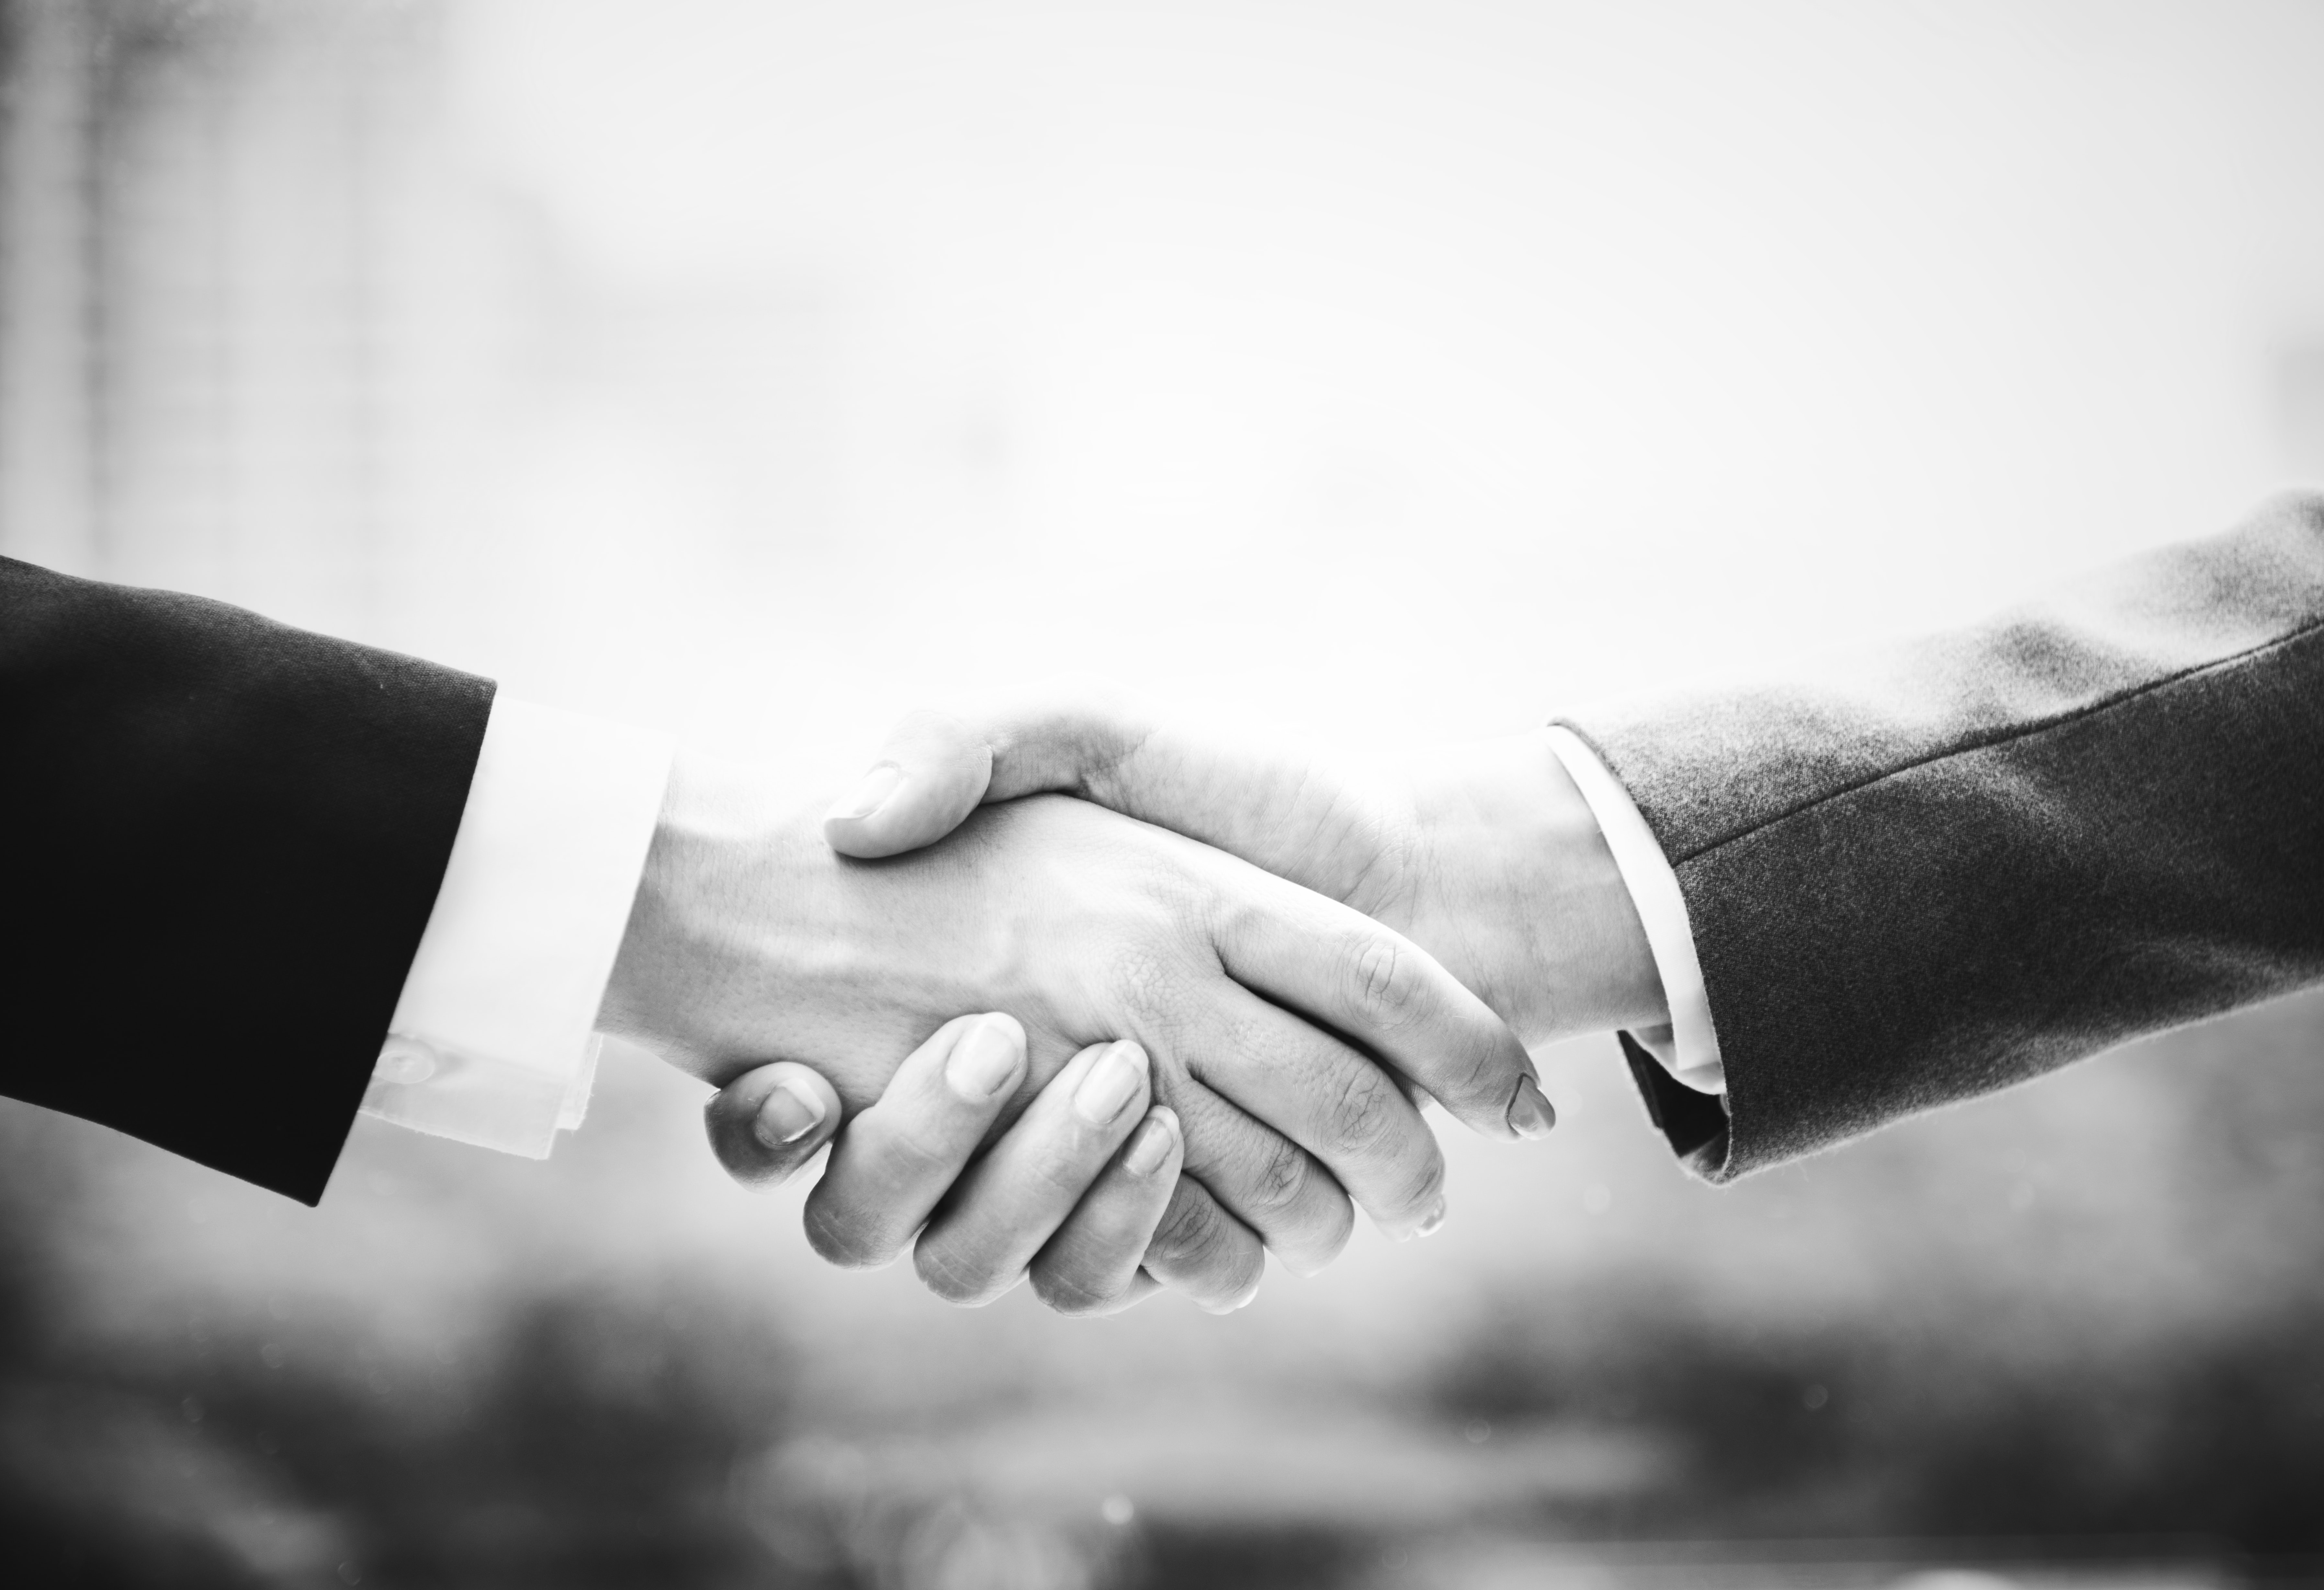 grayscale photo of two person handshakes